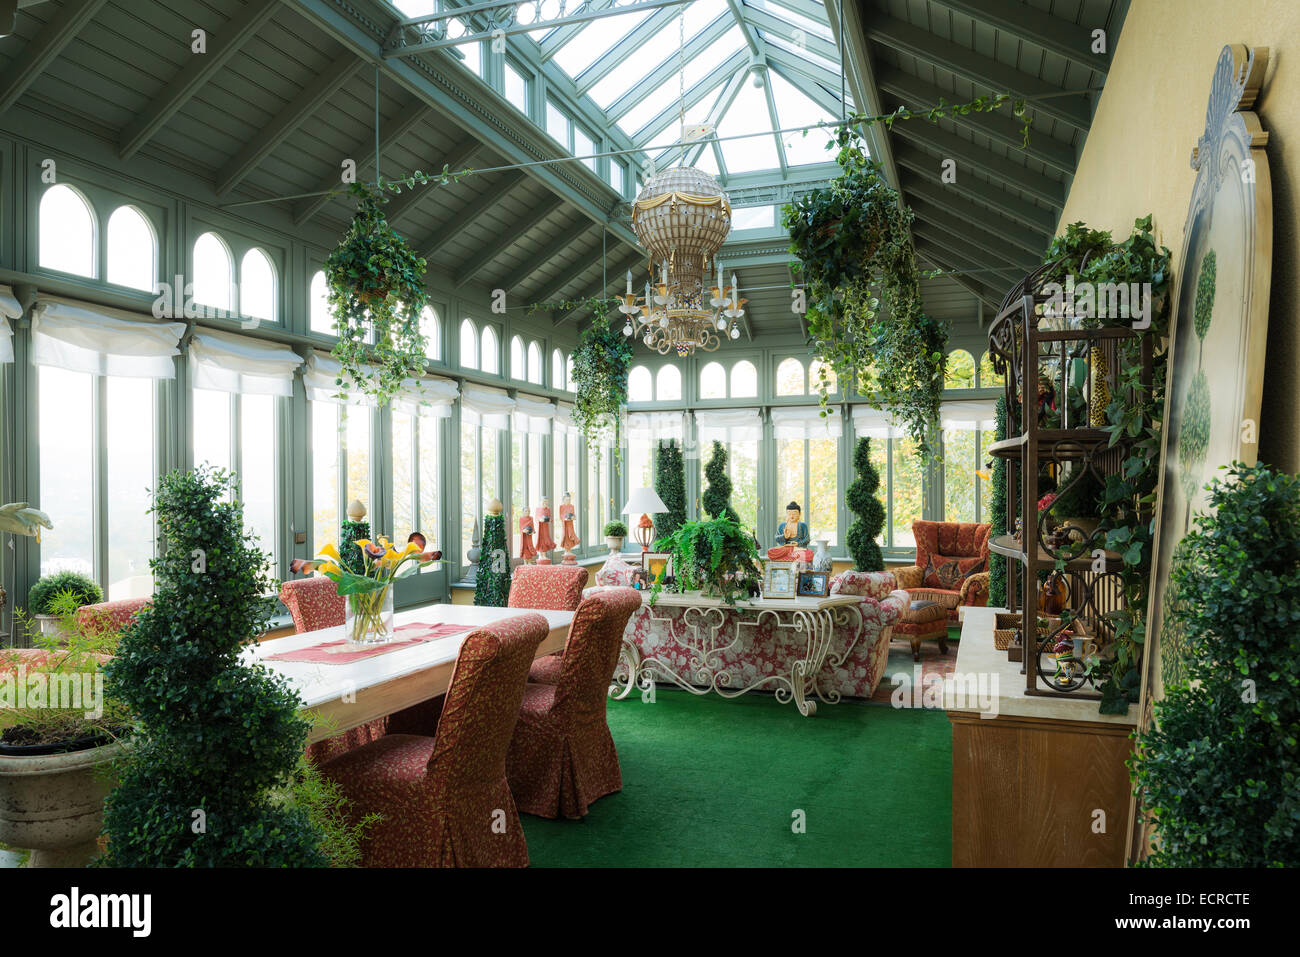 Green carpets and box hedge topiary in orangerie with dining area and floral sofa - Stock Image